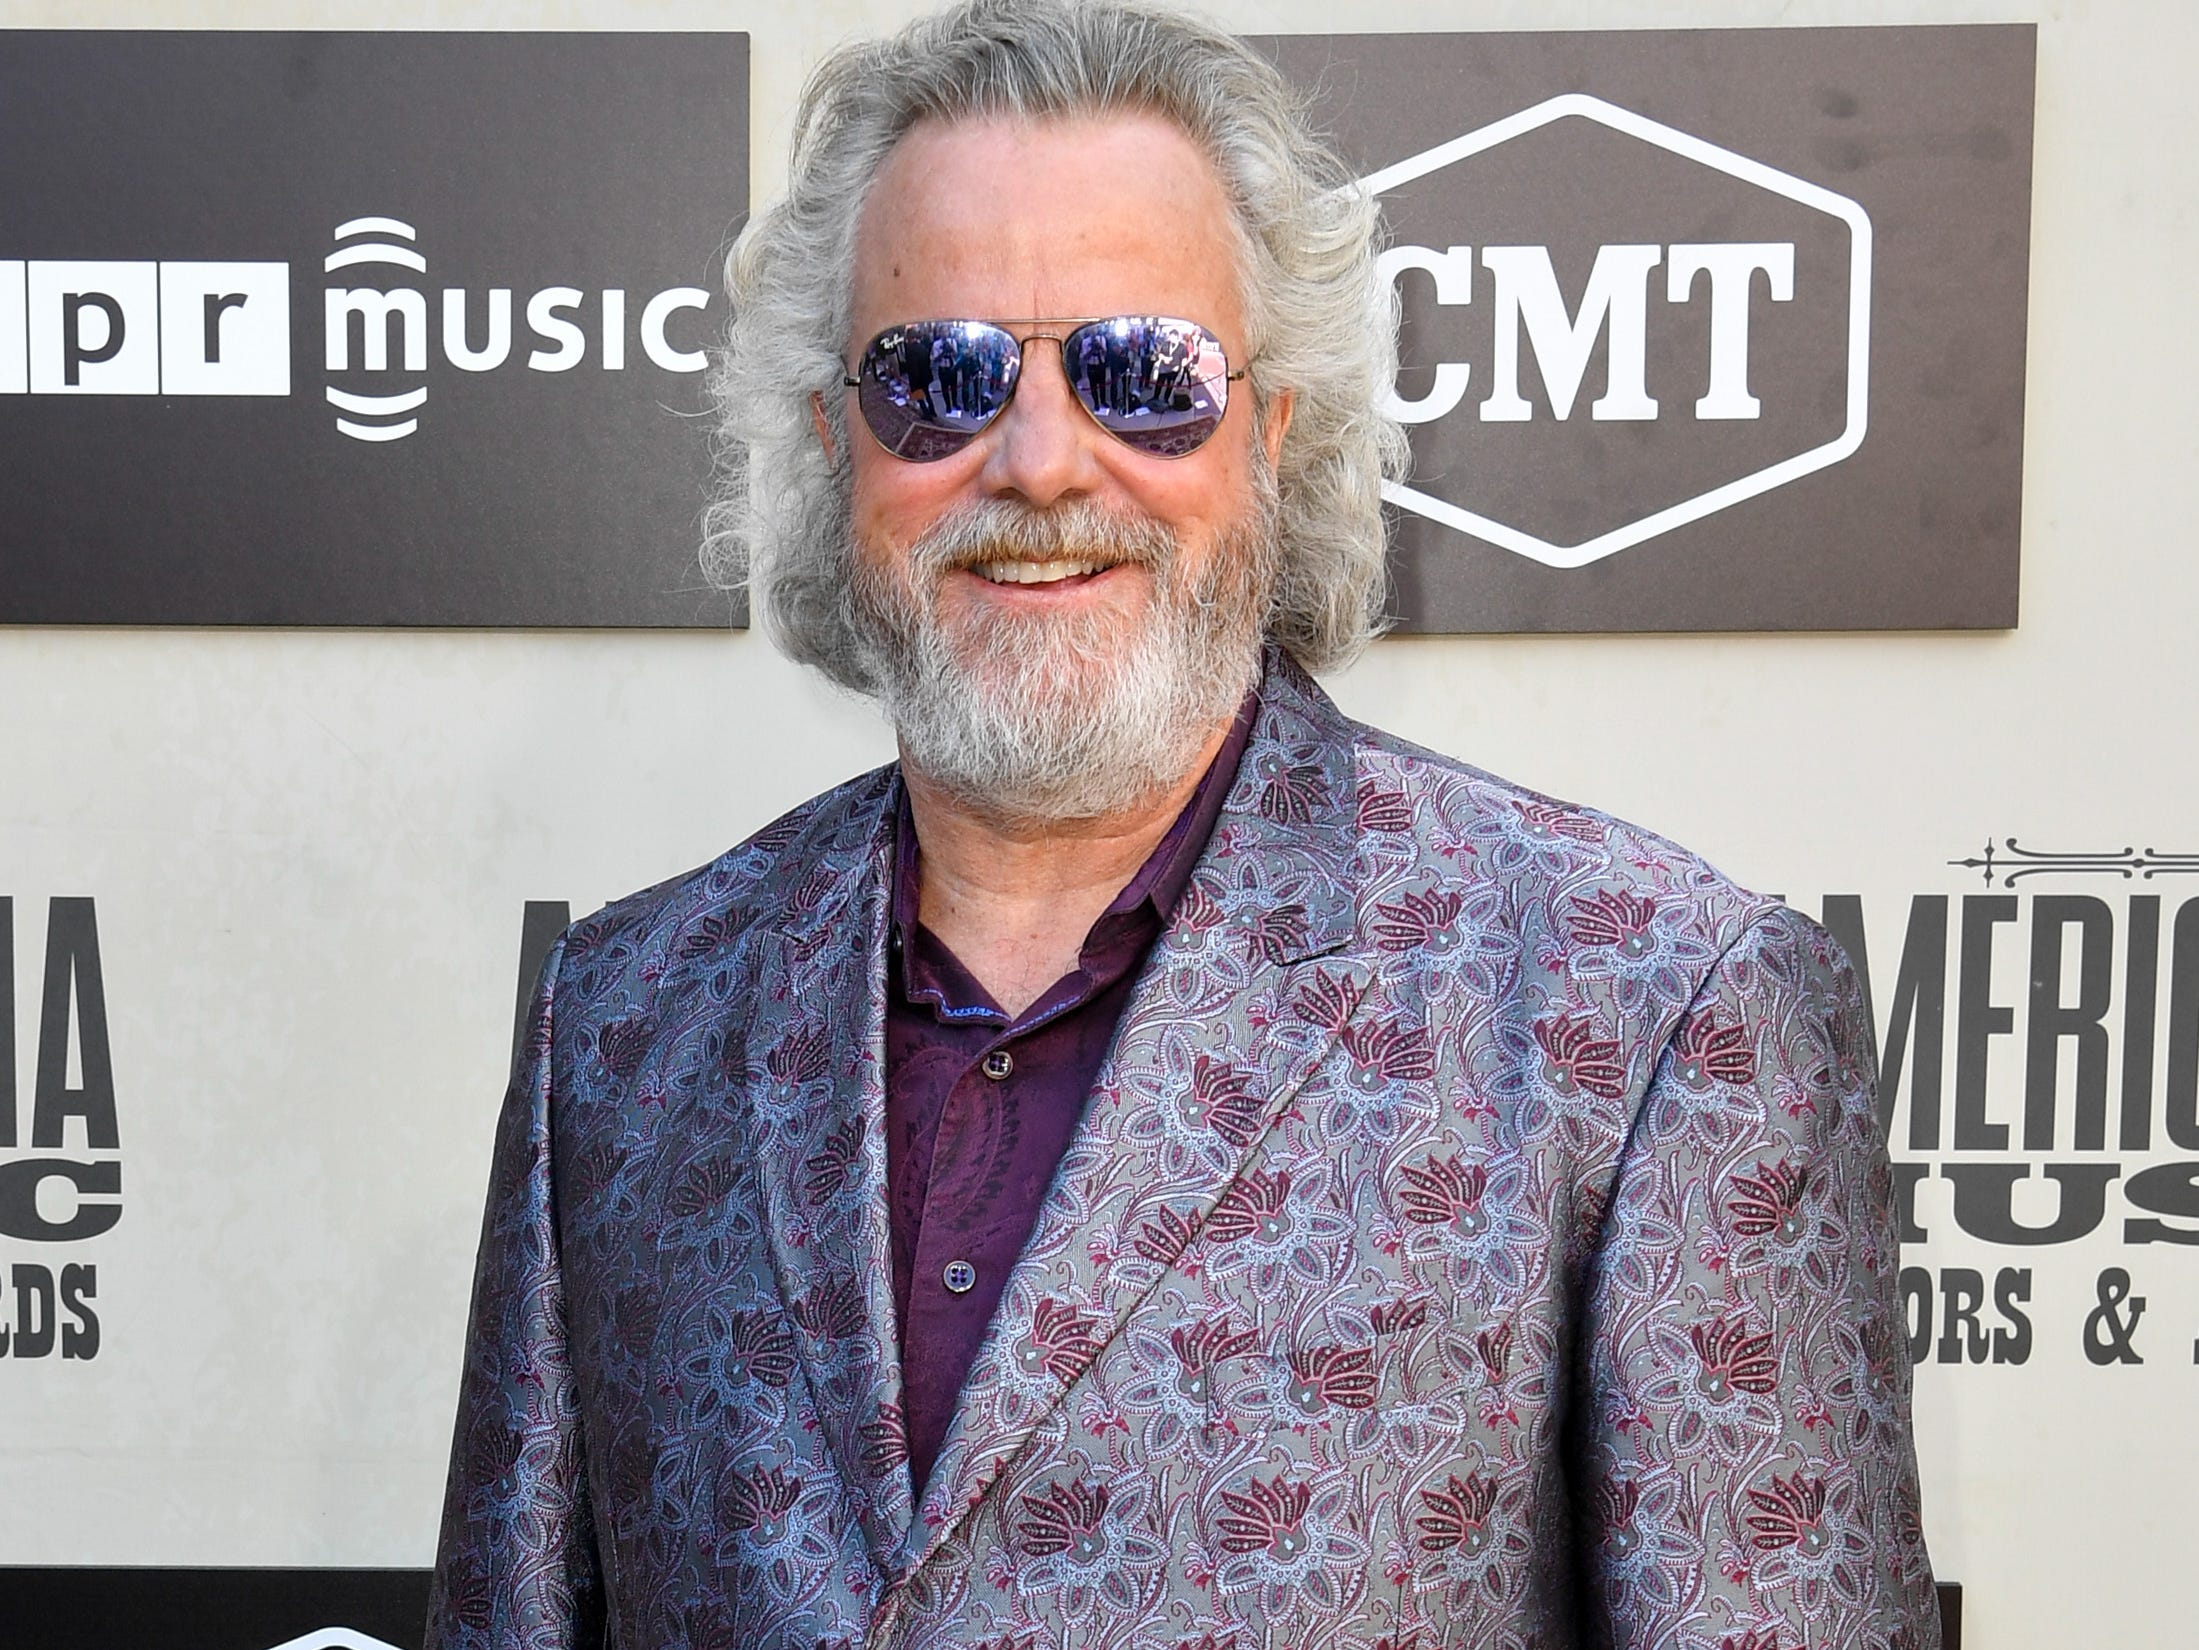 Robert Earl Keen poses on the red carpet before the 2018 Americana Honors and Awards show at the Ryman Auditorium in Nashville, Tenn., Wednesday, Sept. 12, 2018.